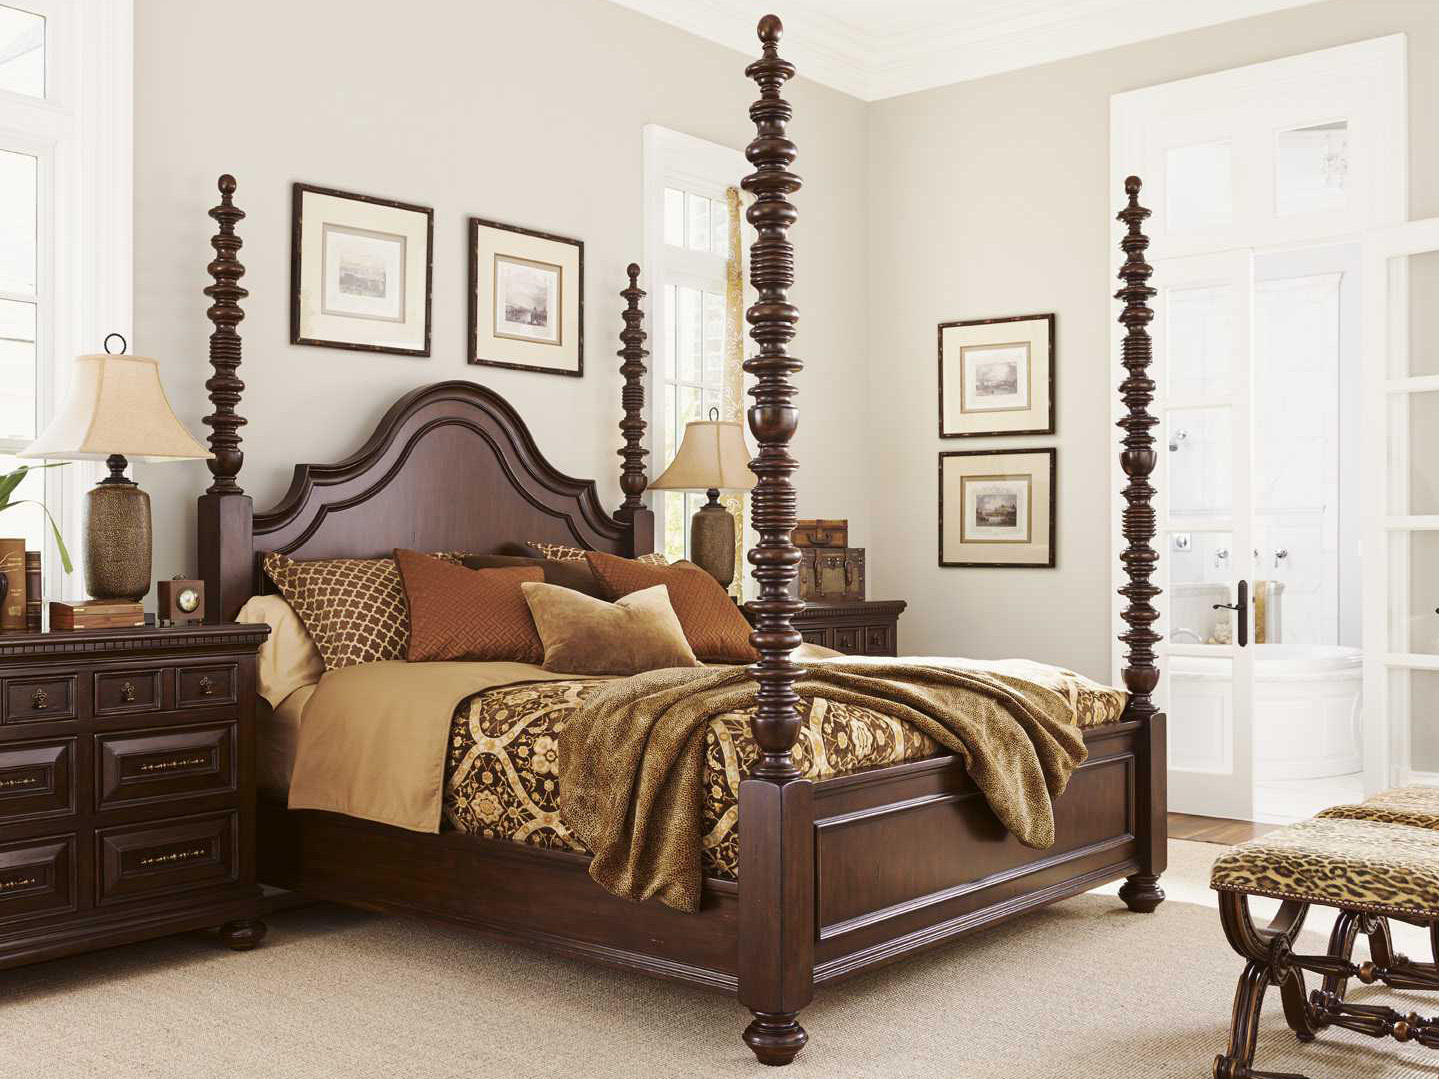 Tommy bahama kilimanjaro candaleria tangier bedroom set - Used lexington bedroom furniture ...